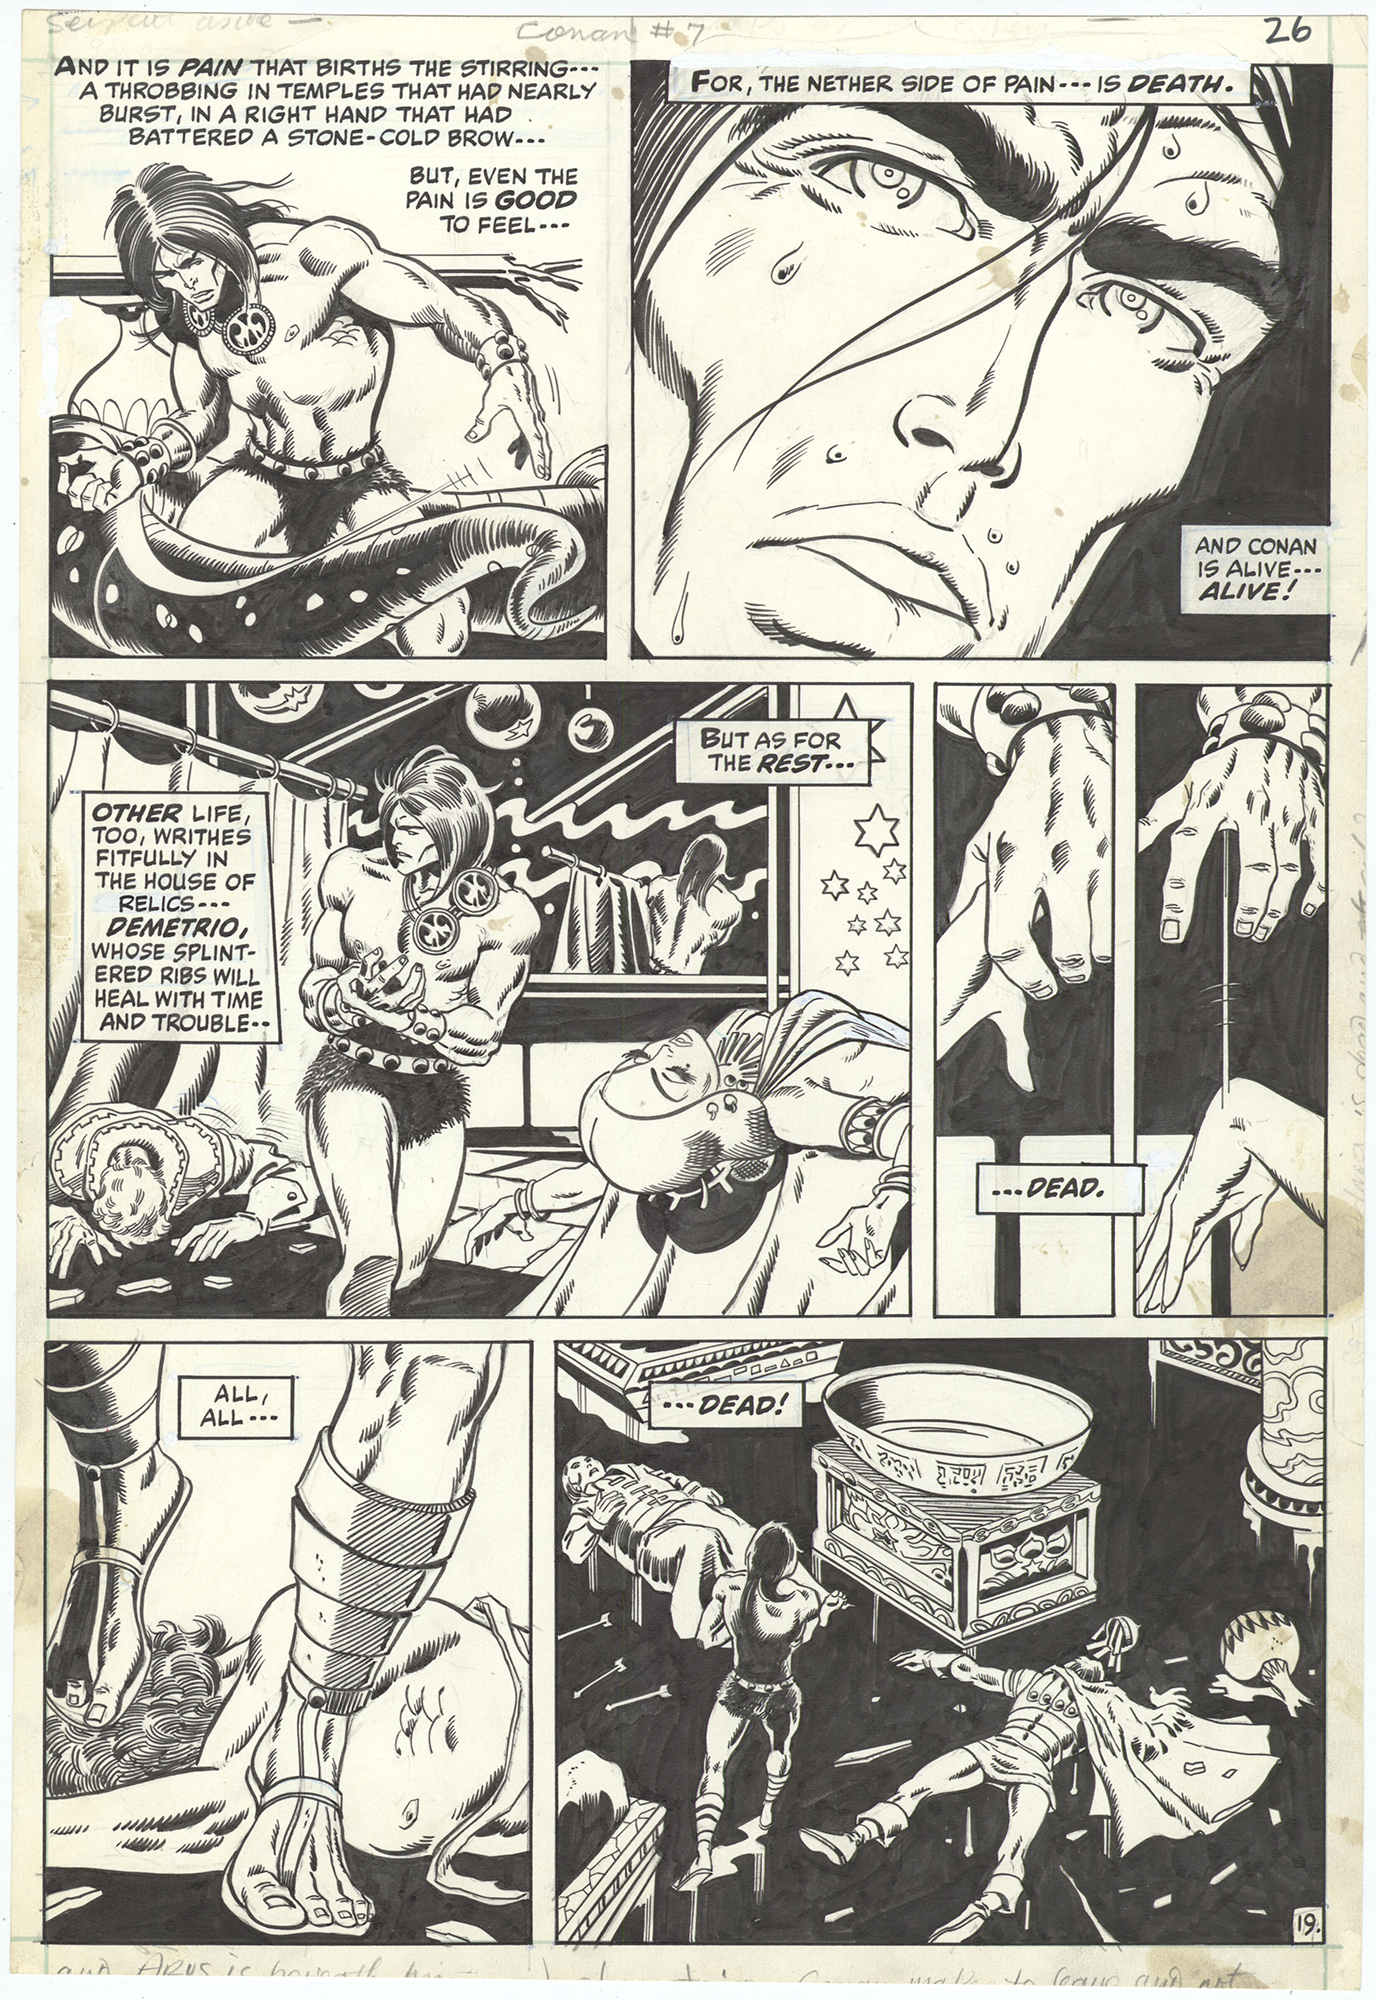 Conan the Barbarian, #7 p19